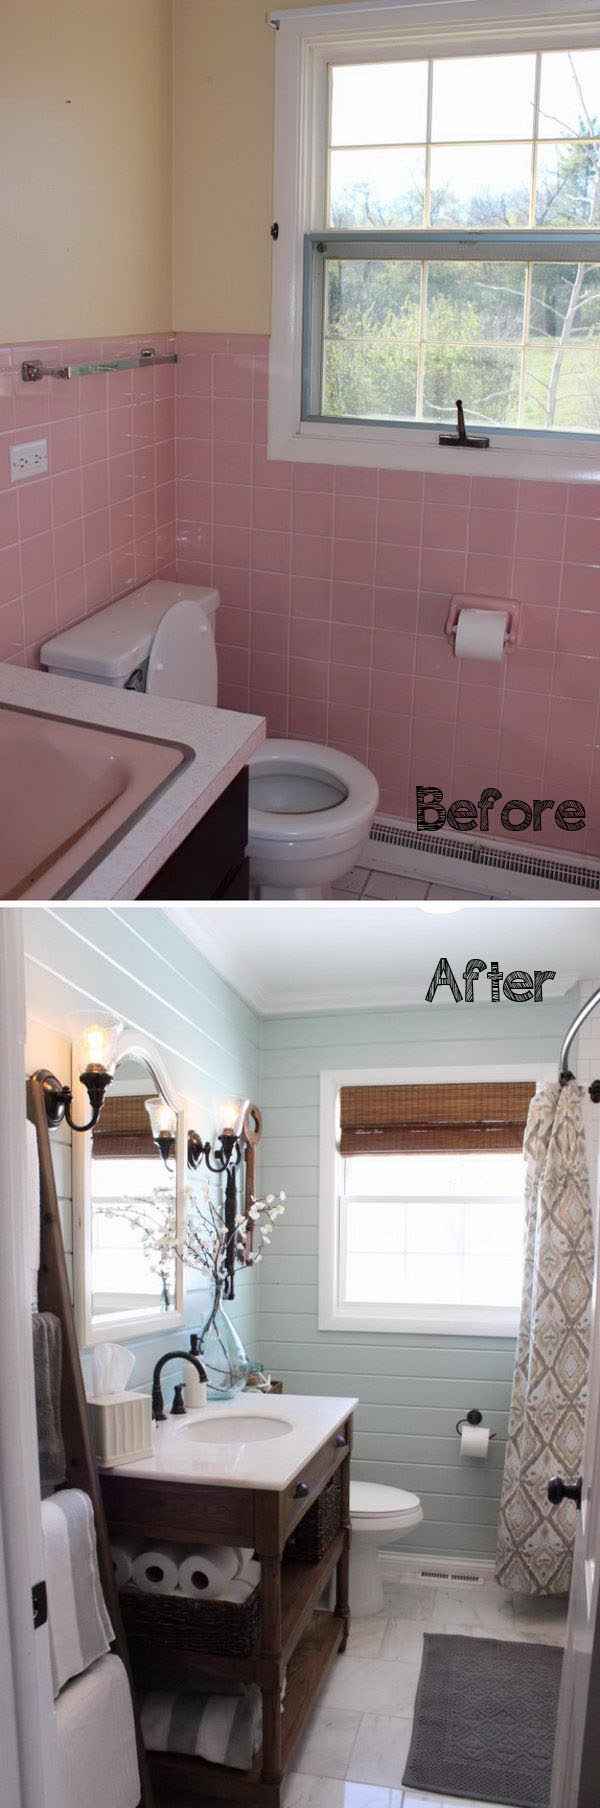 Blue Planked Walls with Crisp White Trim and Wood Details Bring in Farmhouse Style in This Bathroom Renovation .